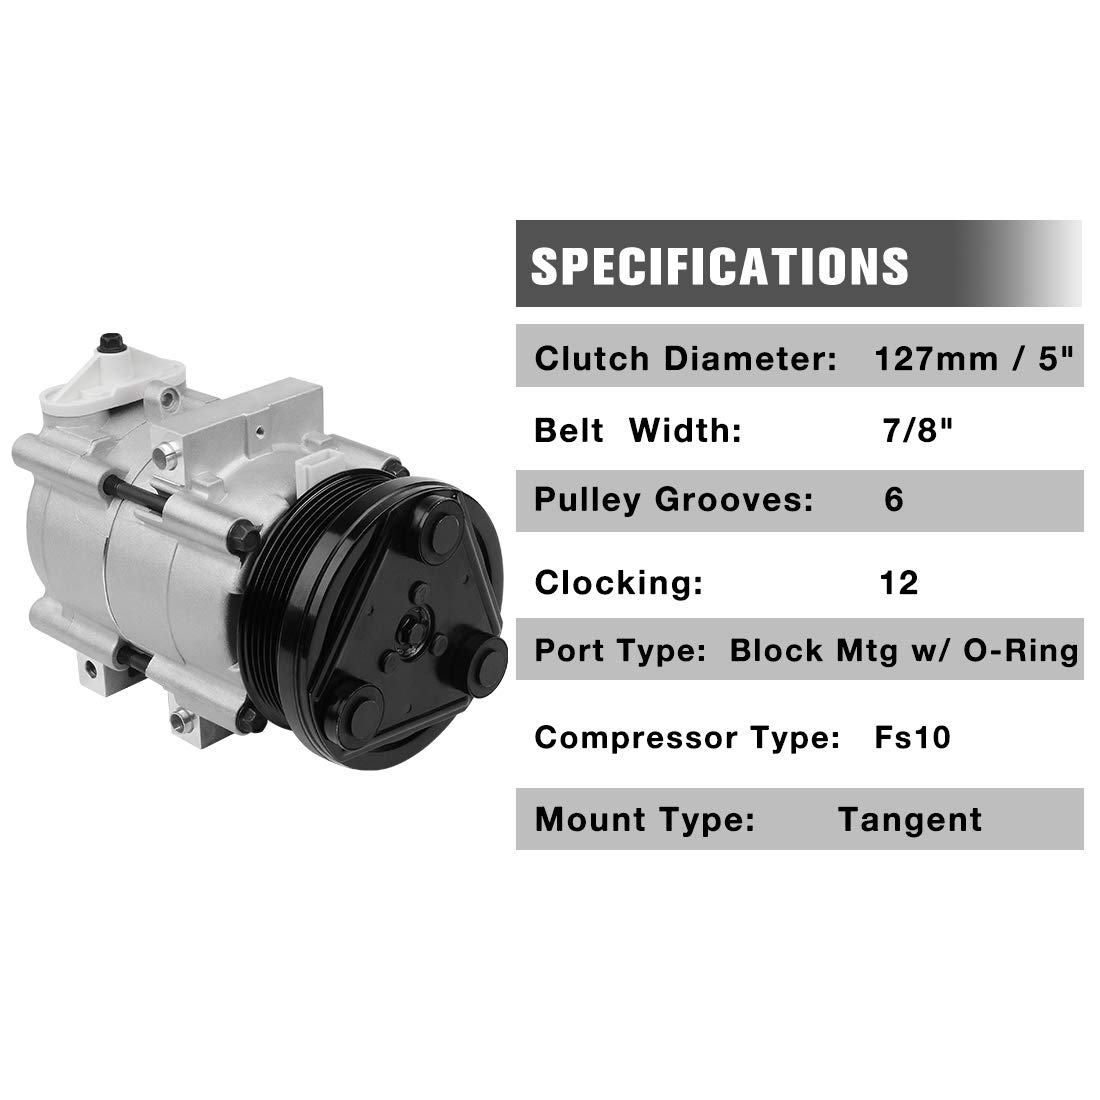 Amazon.com: 6 Grooves A/C Compressor & Clutch for Ford F-150, F-150 Heritage, F-250 Super Duty, F-350 Super Duty, Mustang, Thunderbird, Excursion, ...